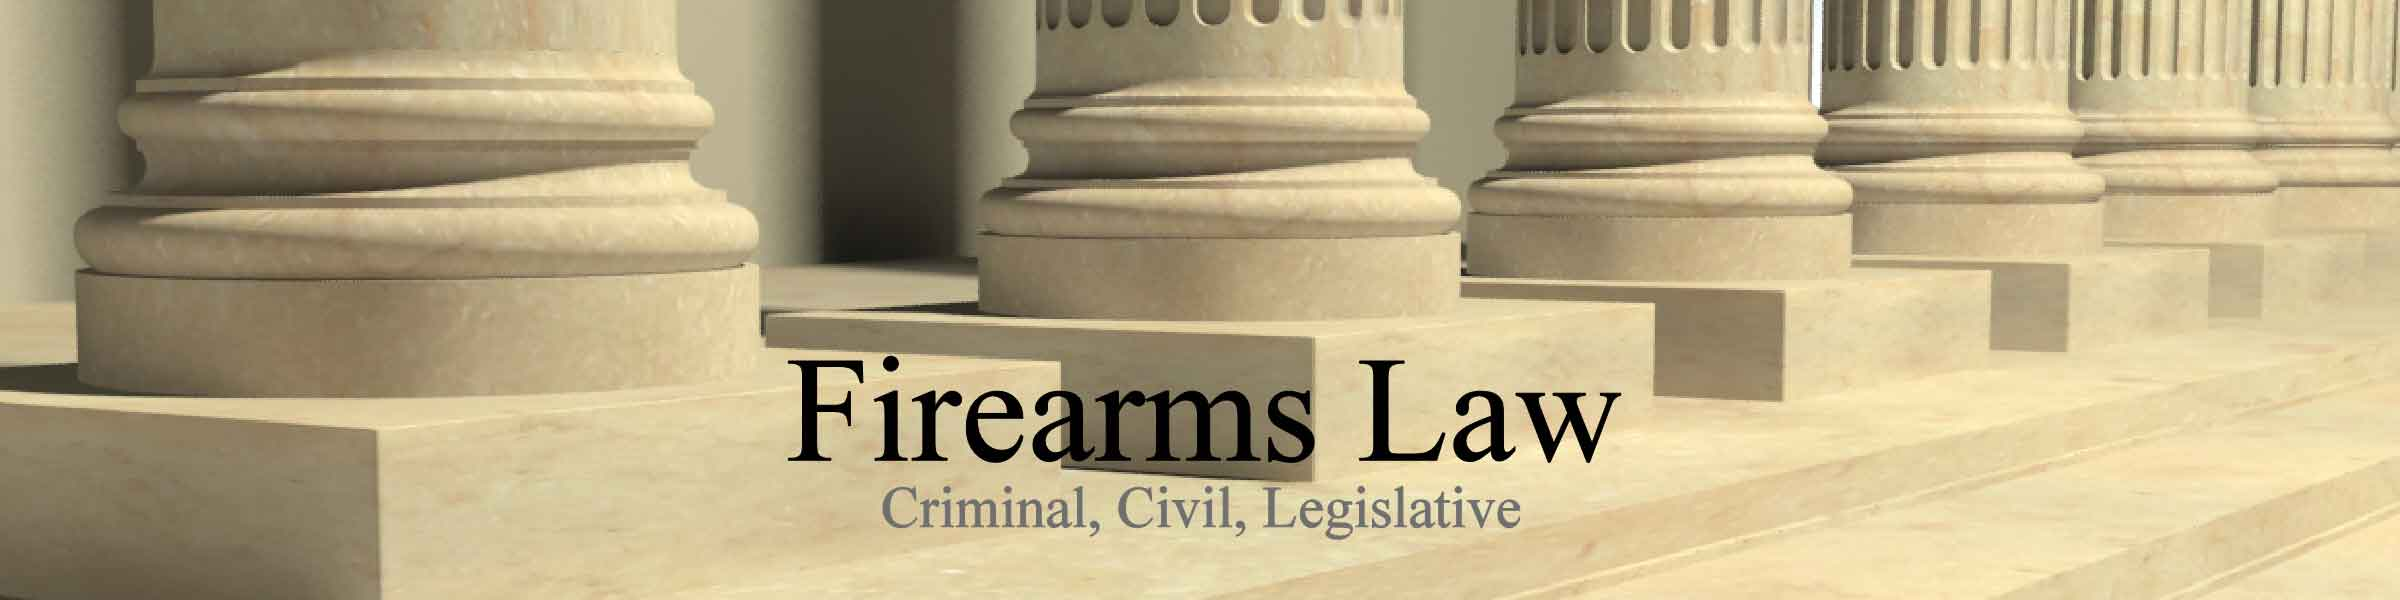 firearms-law-practice2